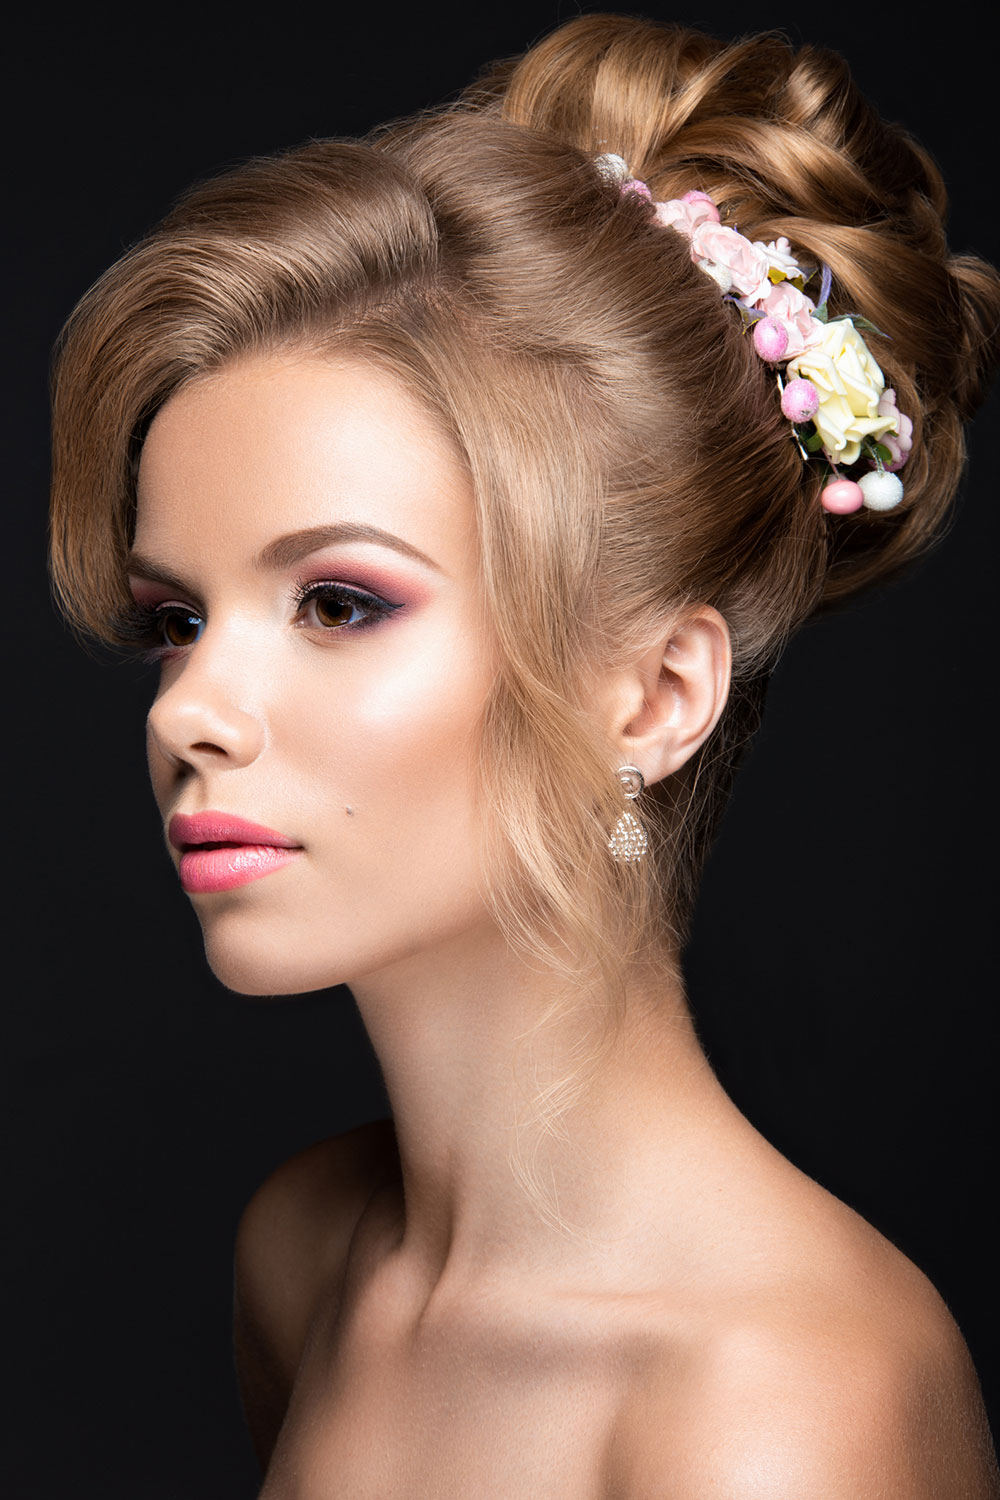 Blonde or brunette style up with flowers Wedding Hairstyle